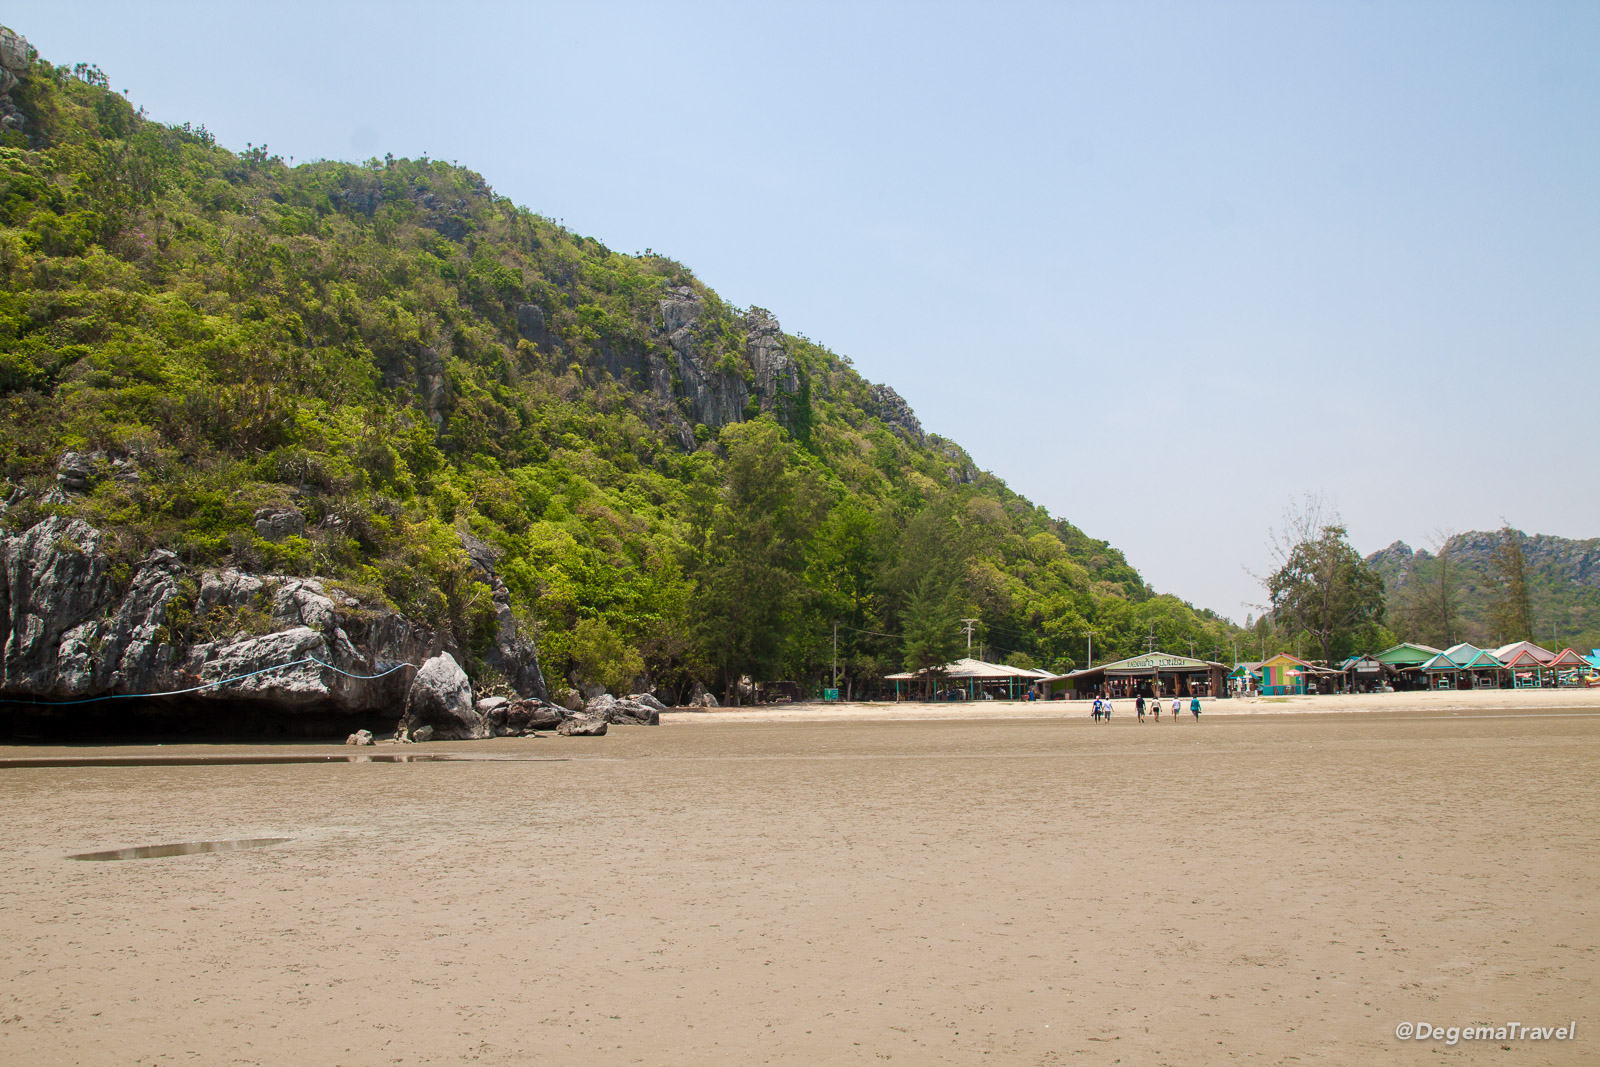 The beach at Khao Sam Roi Yot National Park, Thailand